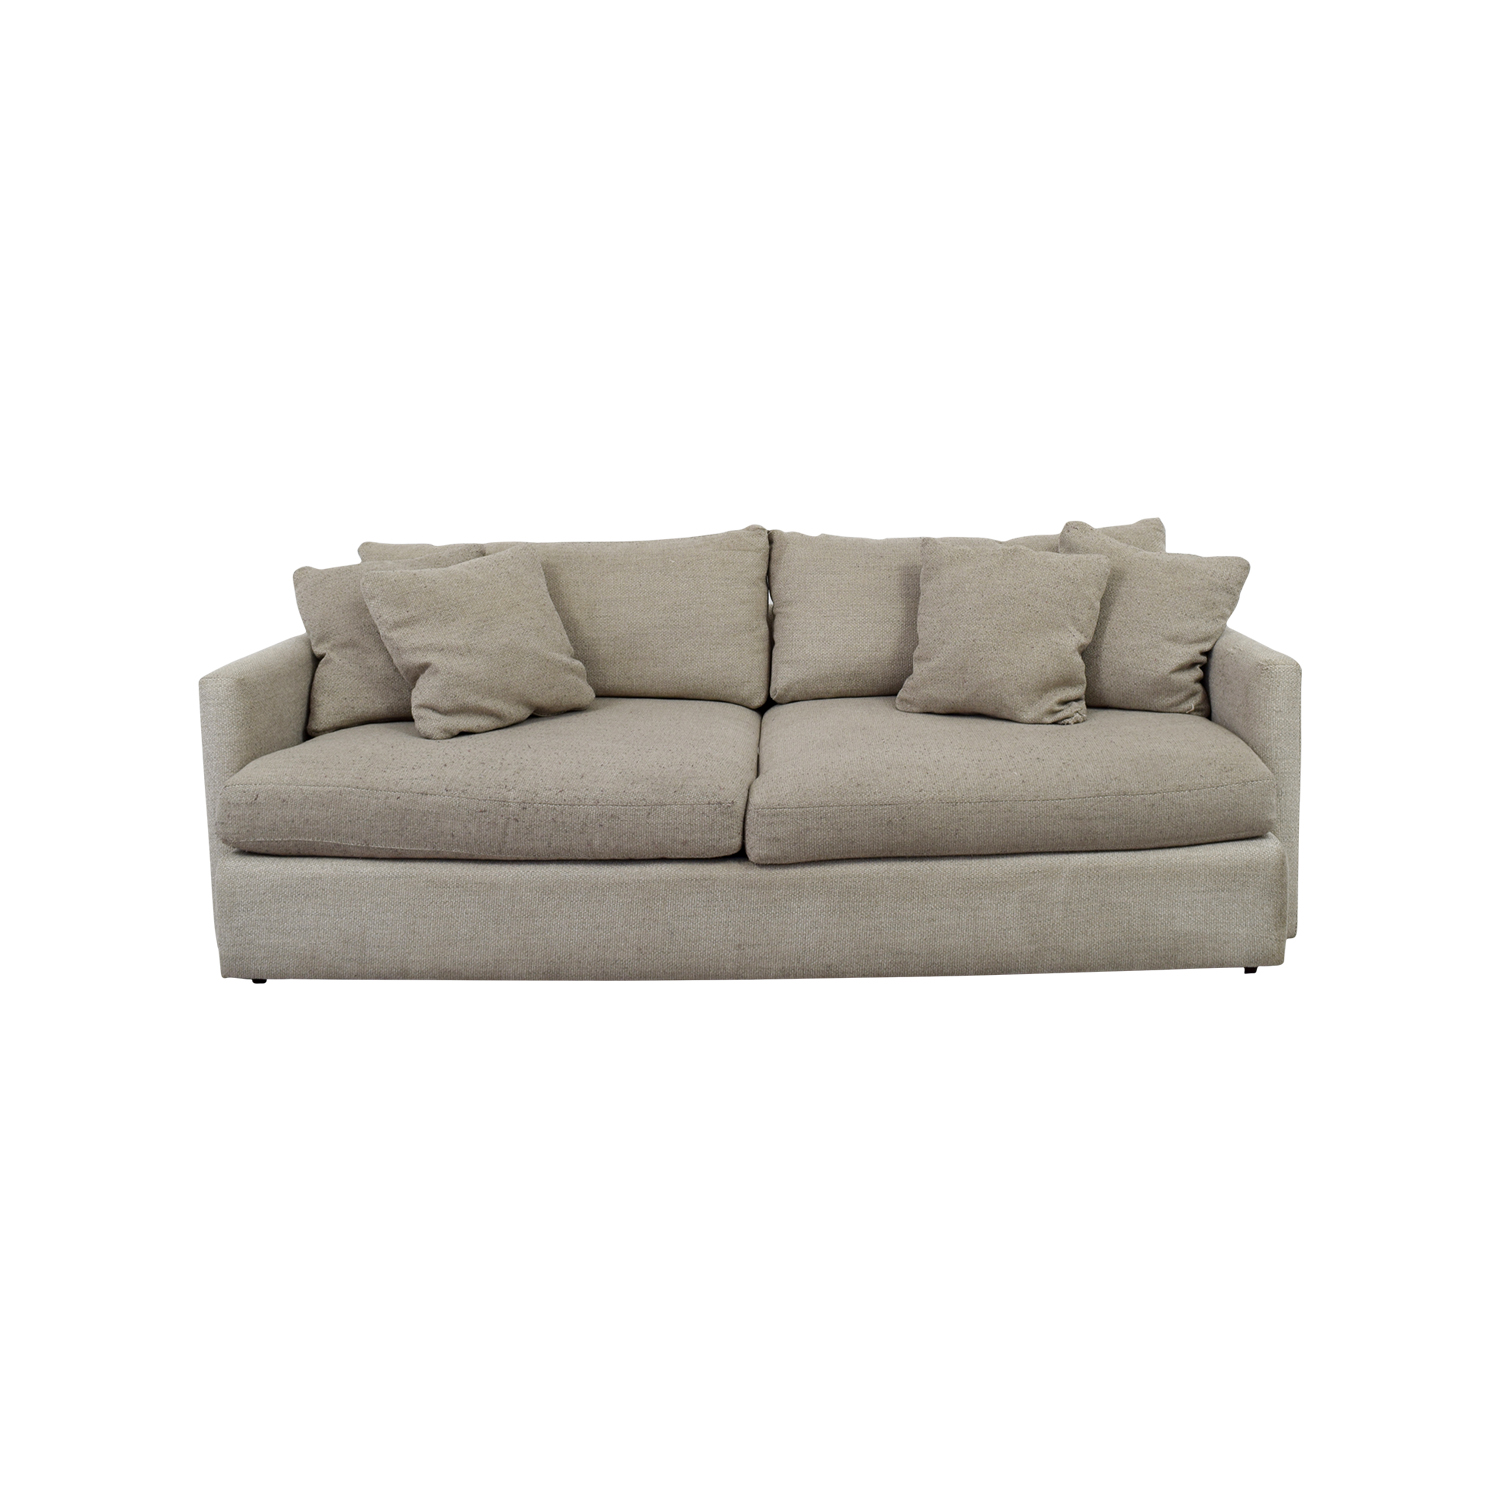 crate and barrel sofa cushion replacement sleeping bed classic sofas used for sale